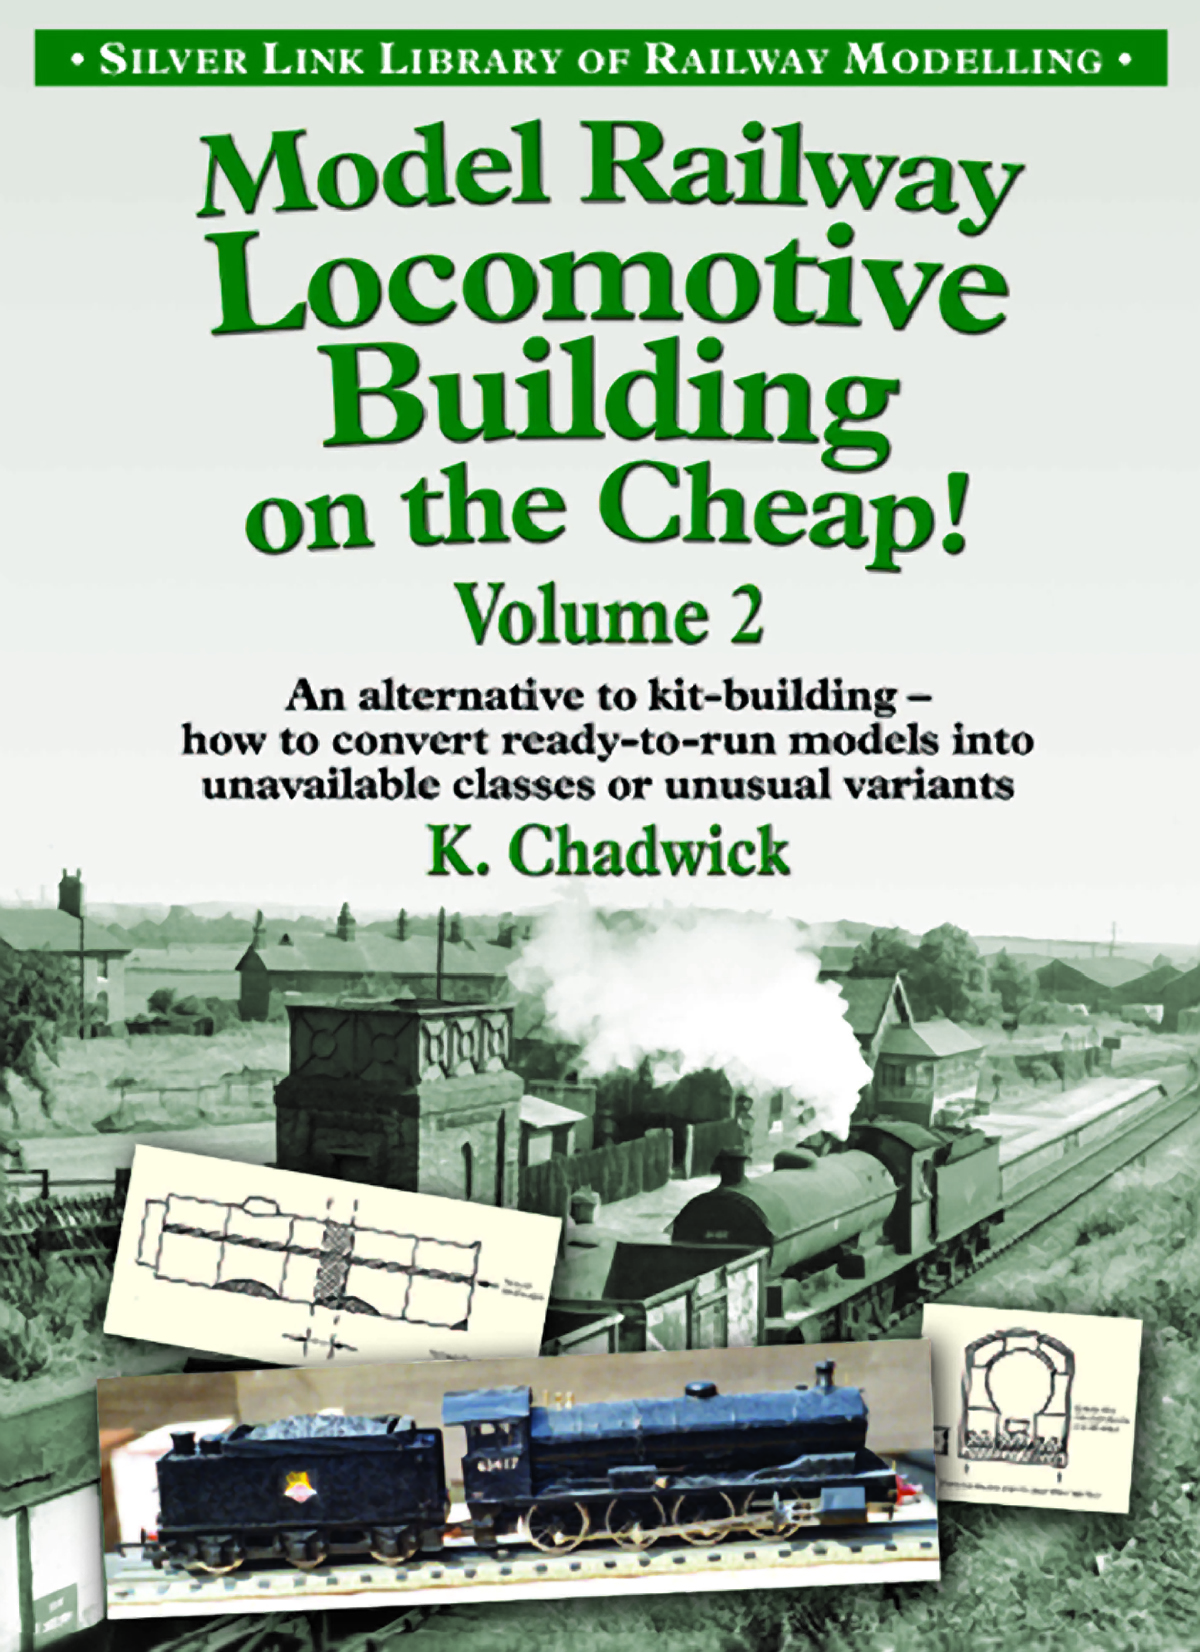 3122 - Model Railway Loco building on the cheap - Vol 2